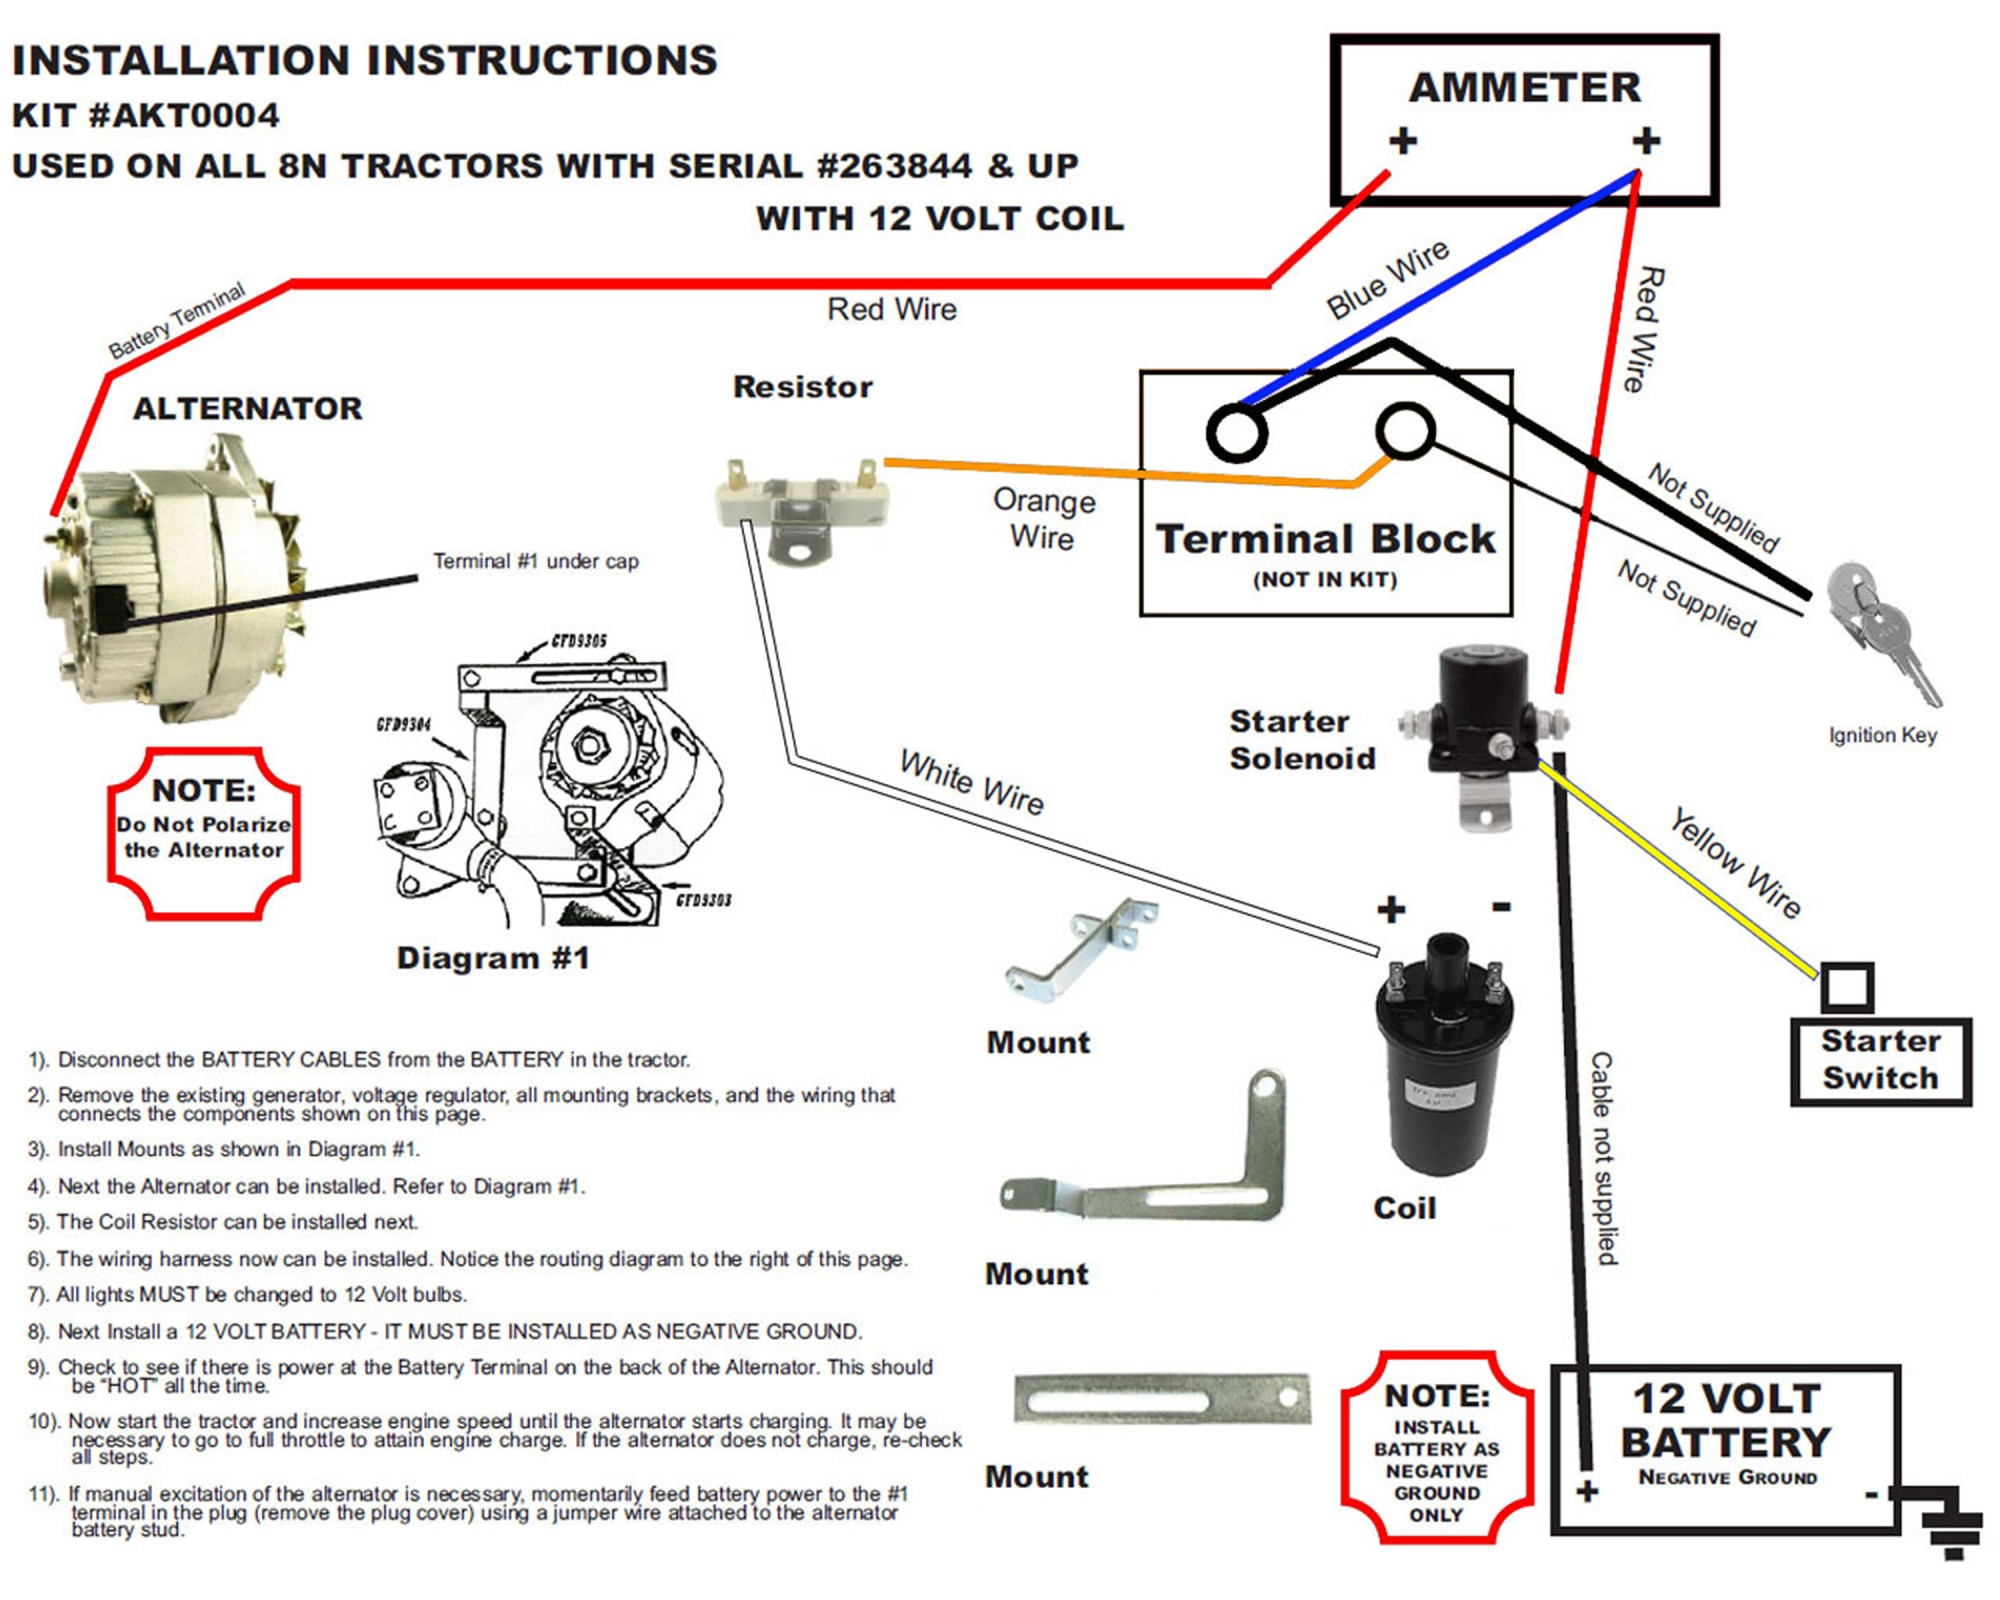 hight resolution of new generator alternator fits conversion kit late model 12 volt wiring diagram for farmall 450 12 volt wiring diagram for farmall 450